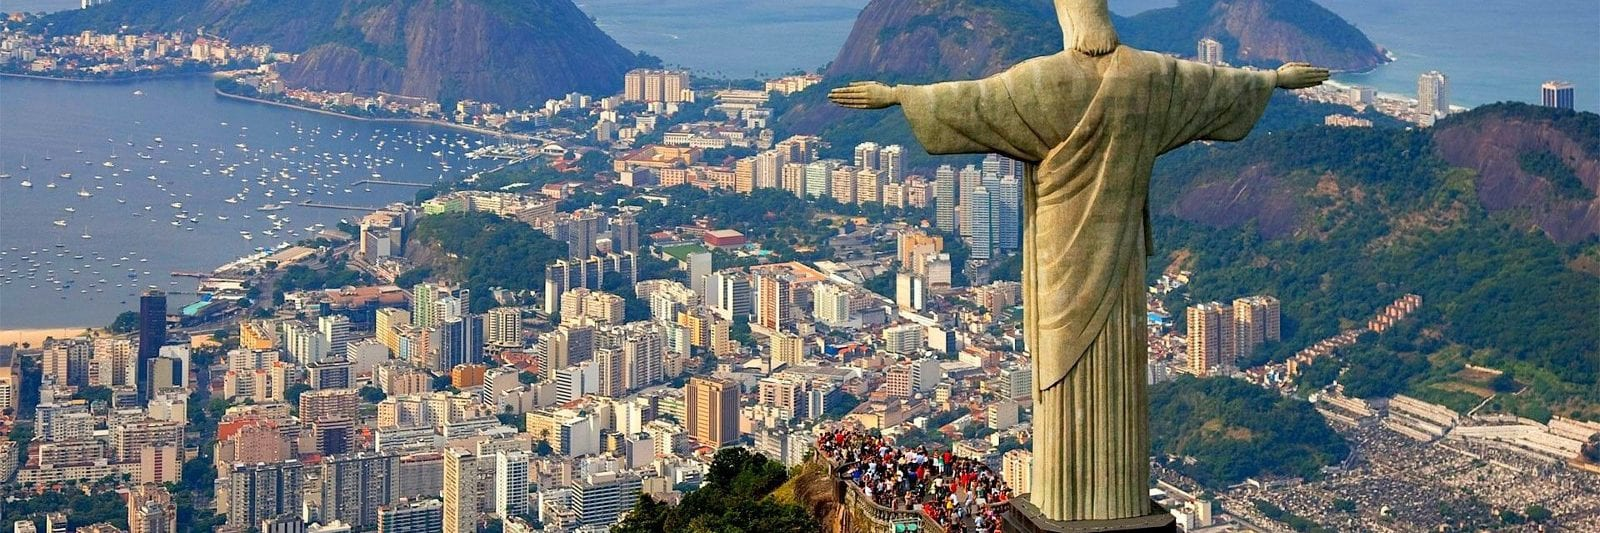 Best Places To Visit in South America Brazil Peru